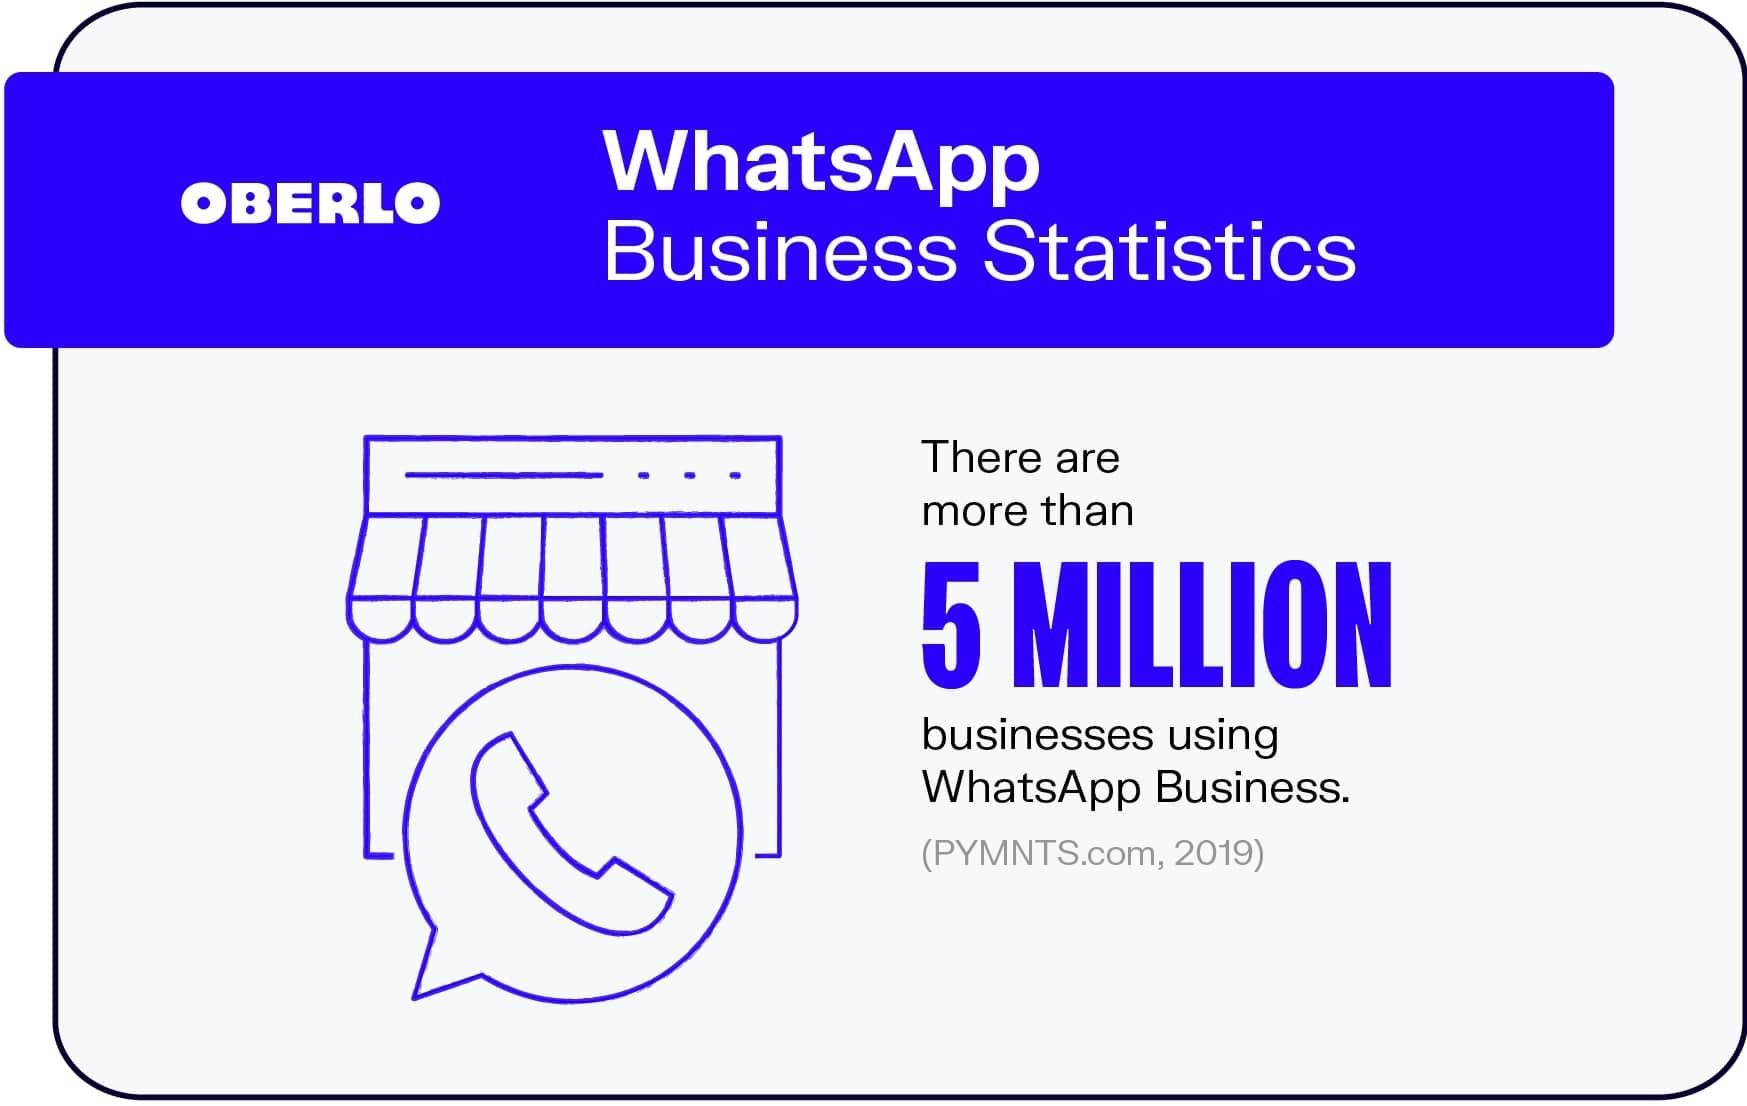 WhatsApp Business Statistics